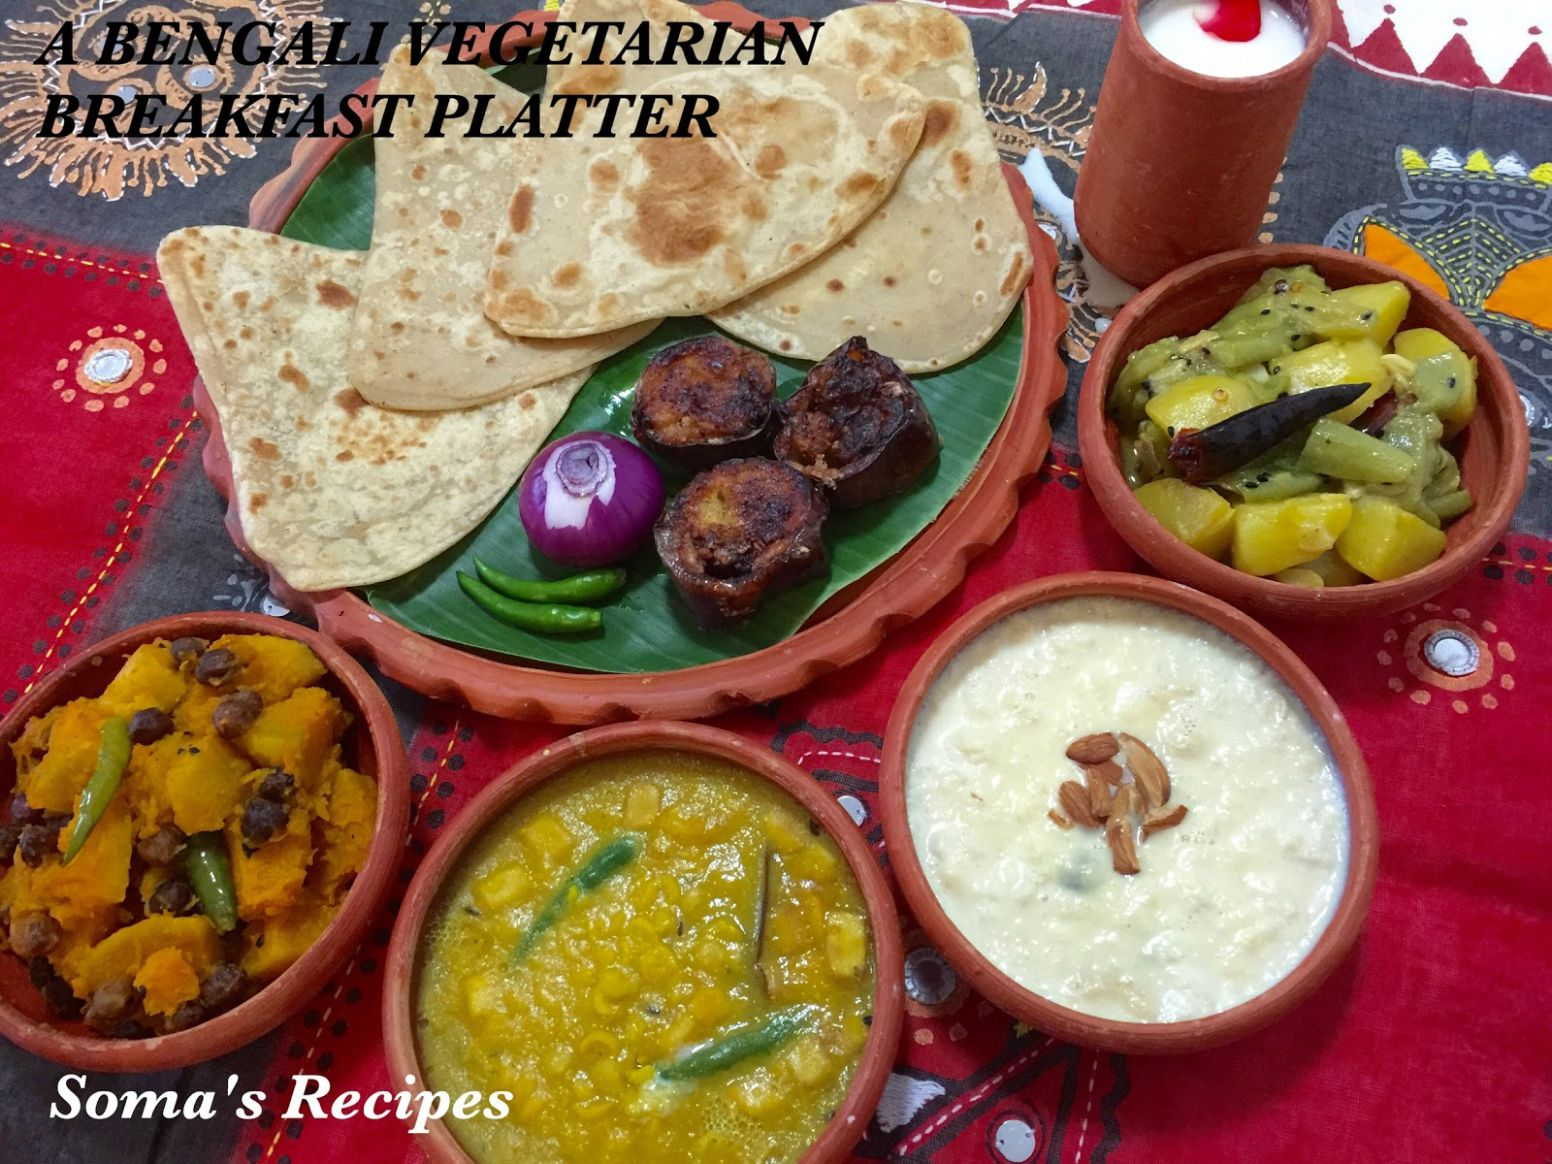 CURRY AND SPICE: A BENGALI VEGETARIAN BREAKFAST PLATTER